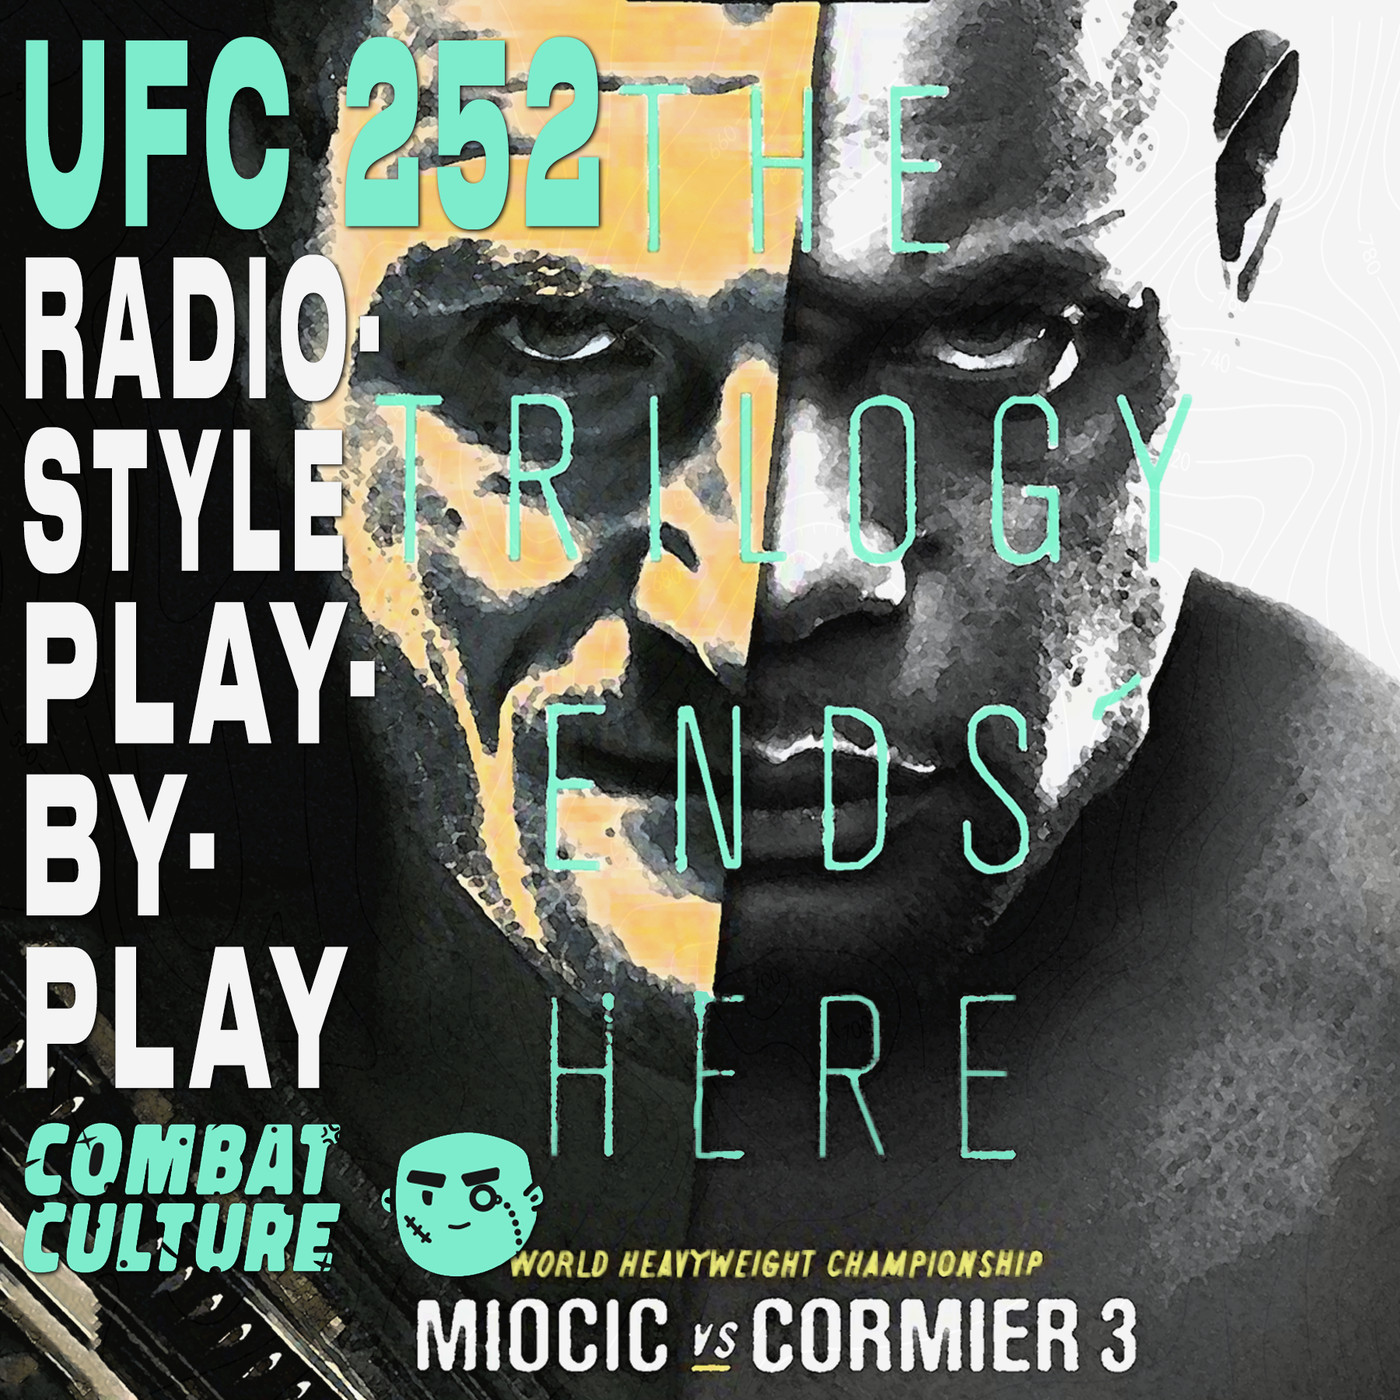 Ufc 252 Live Stream Miocic Vs Cormier 3 Results Radio Style Ppv Fight Updates Mmamania Com